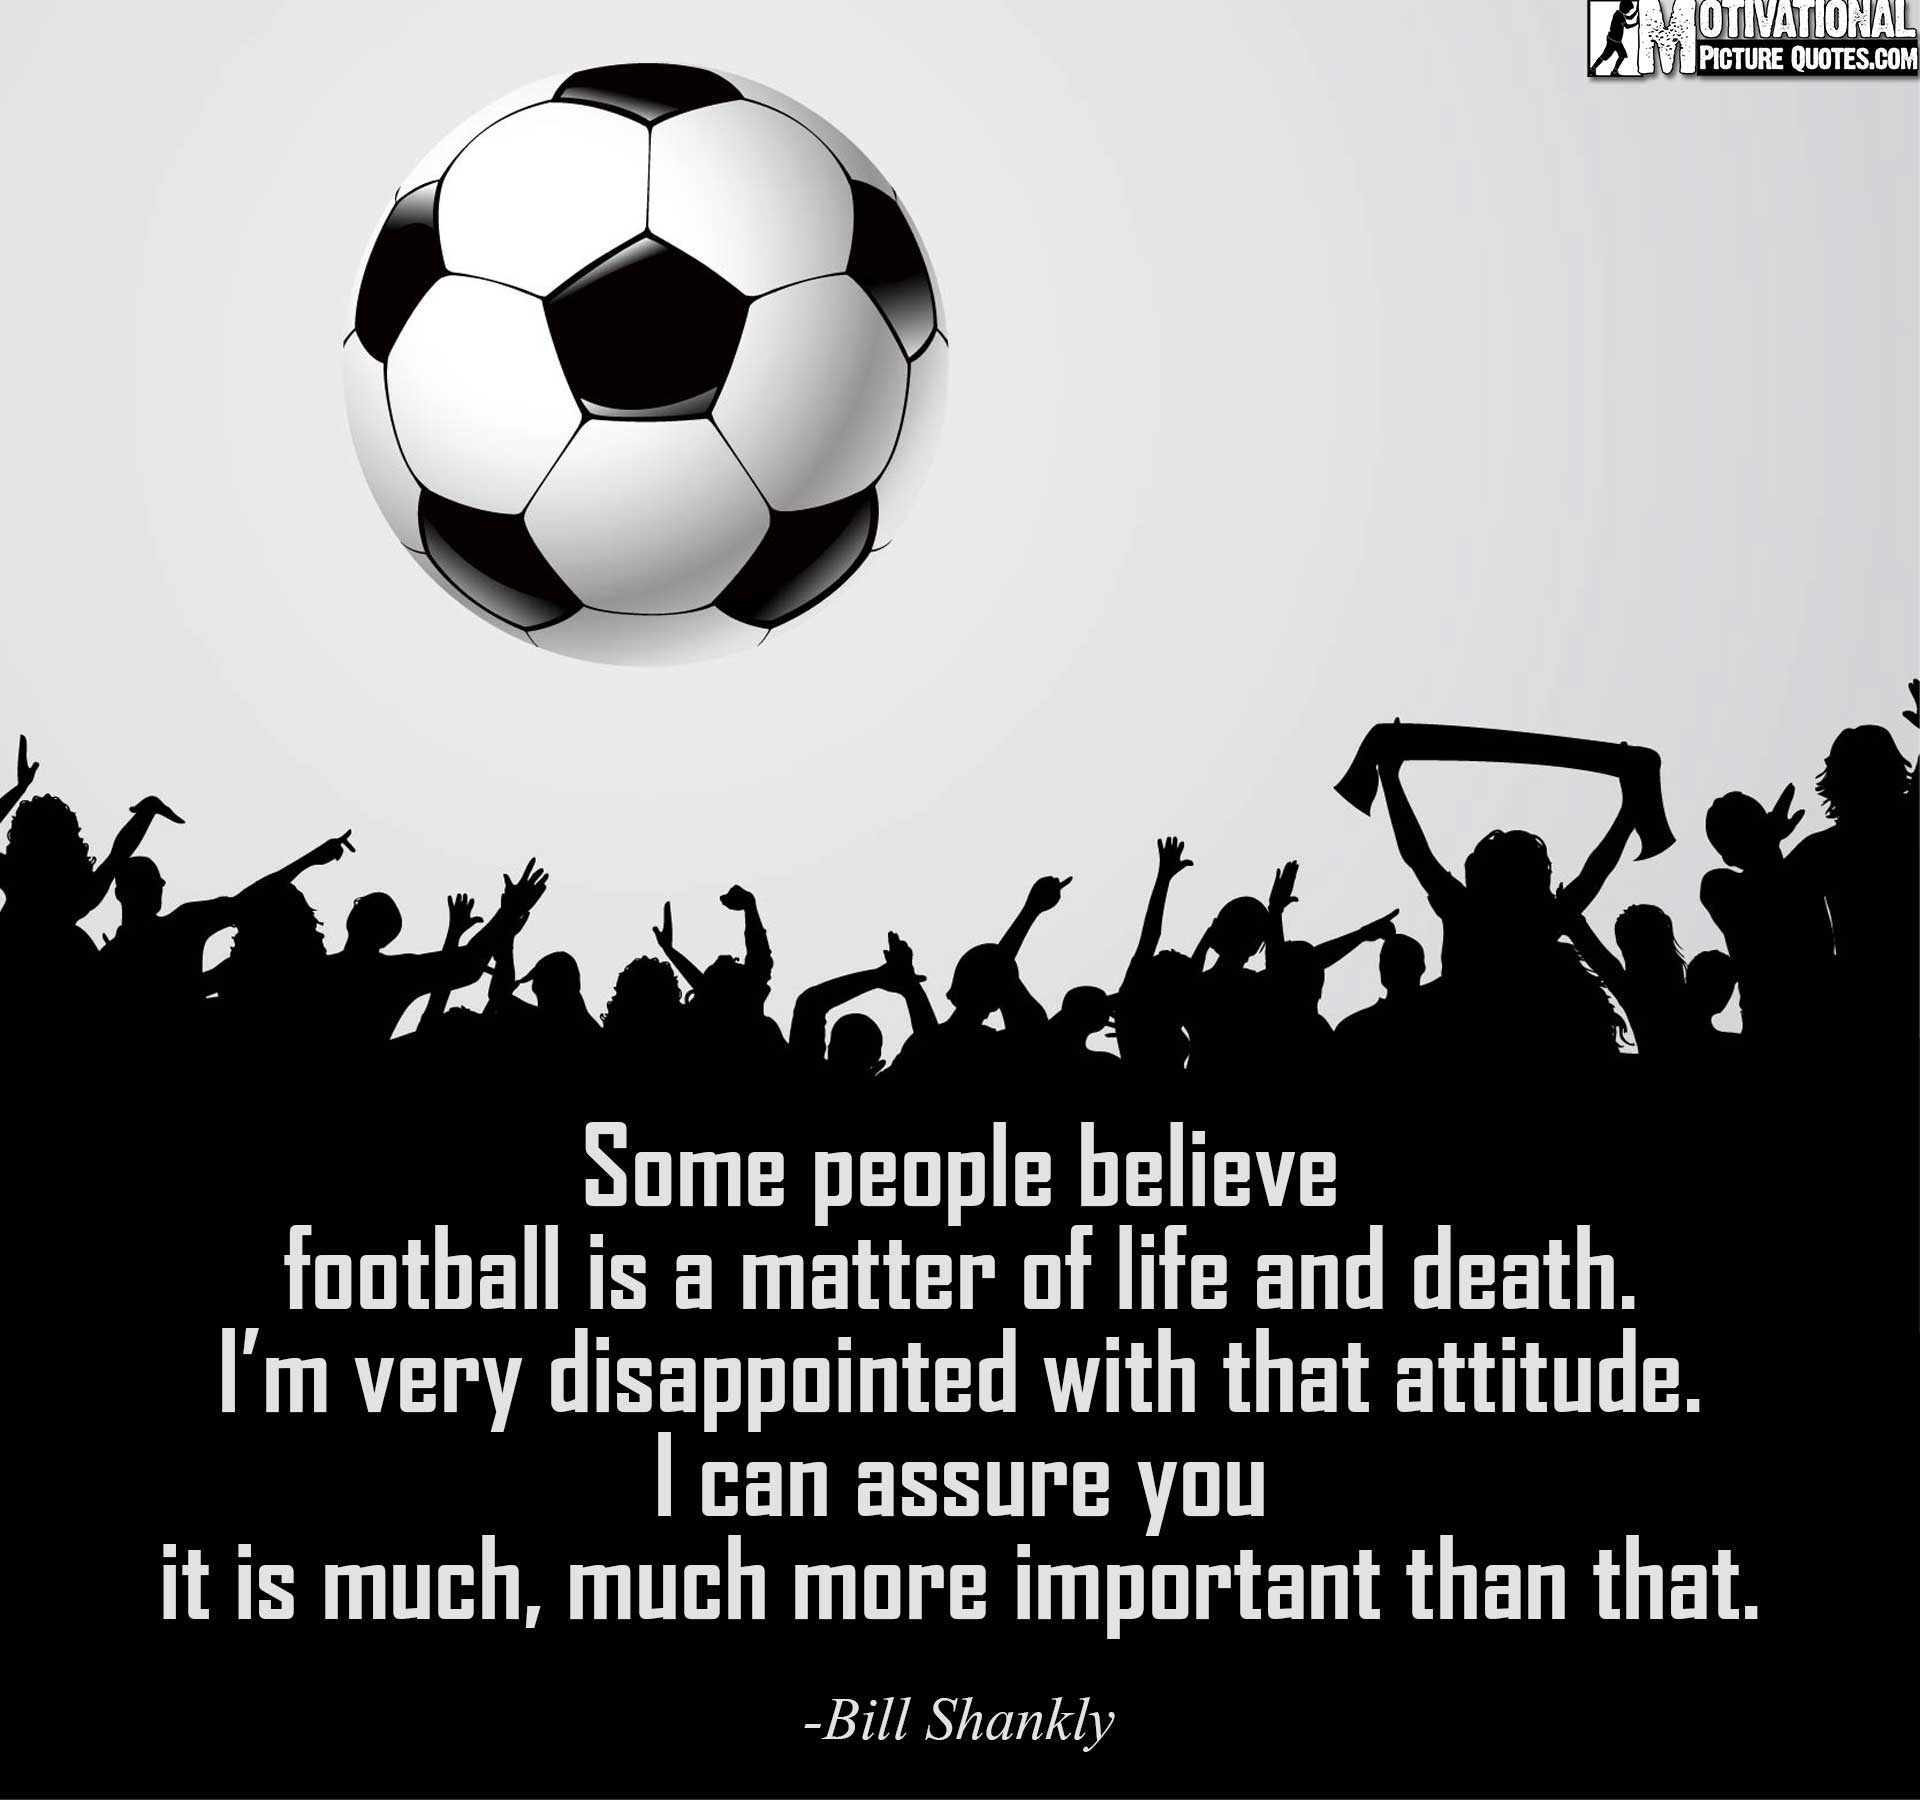 Motivational Football Quotes Classy 45 Inspirational Football Quotes Images  Soccer Quotes  Insbright